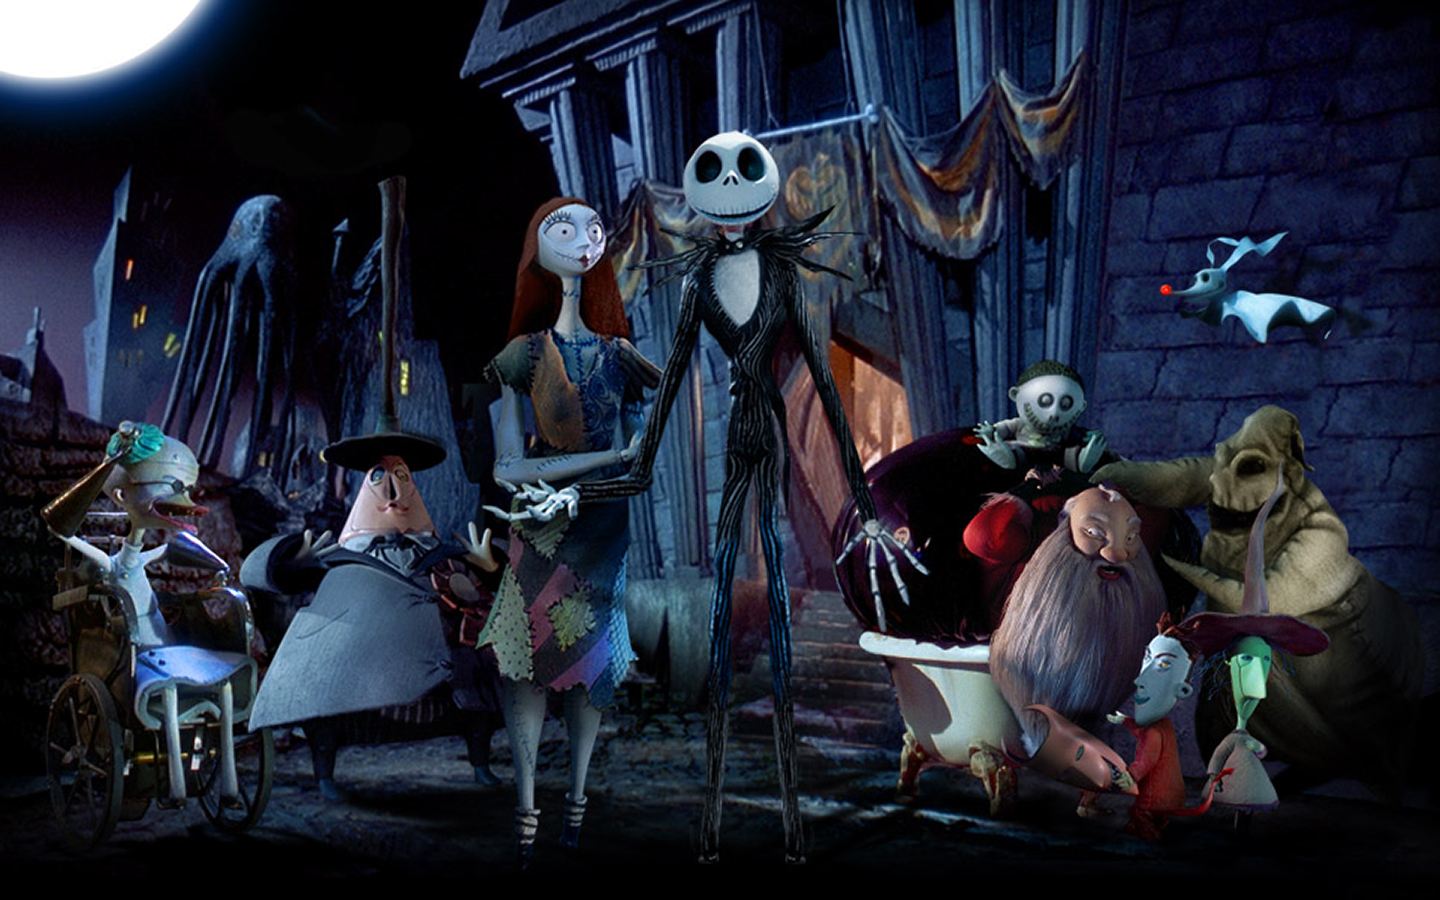 ... Coders Wallpaper Abyss Movie The Nightmare Before Christmas 494784